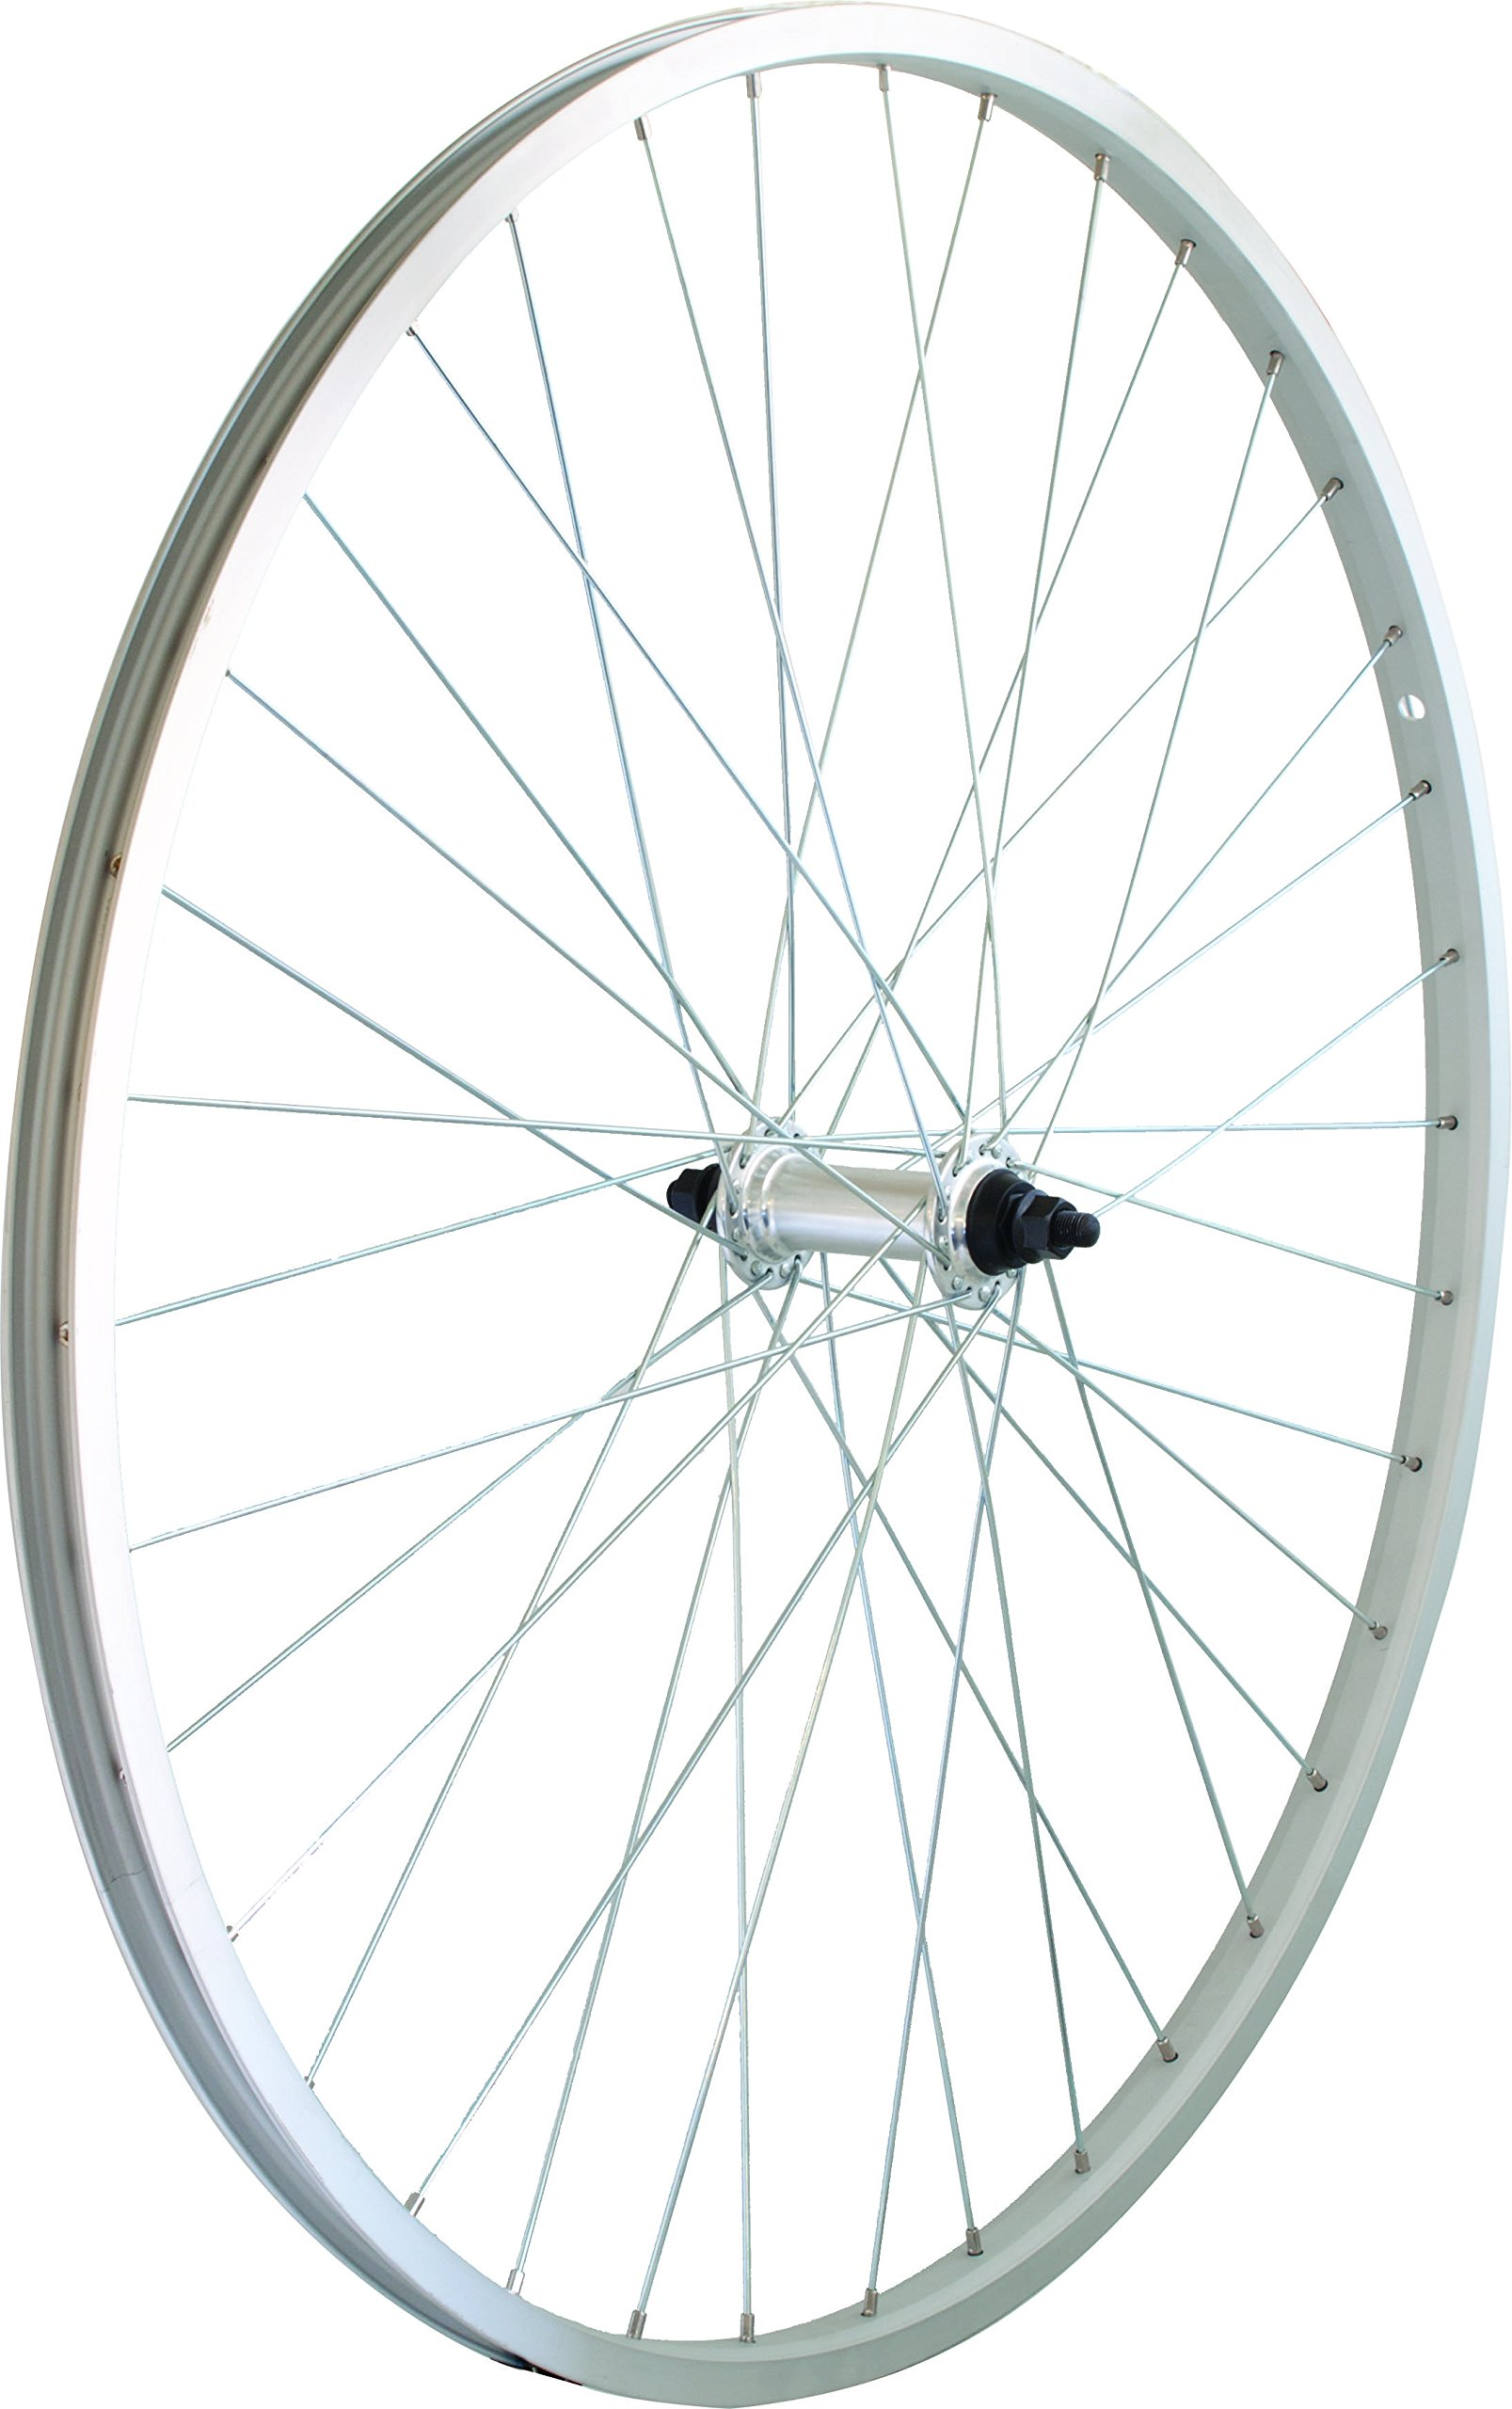 Wheel Al 27X1-1/4 Front Action Bolt-On Ucp Silver